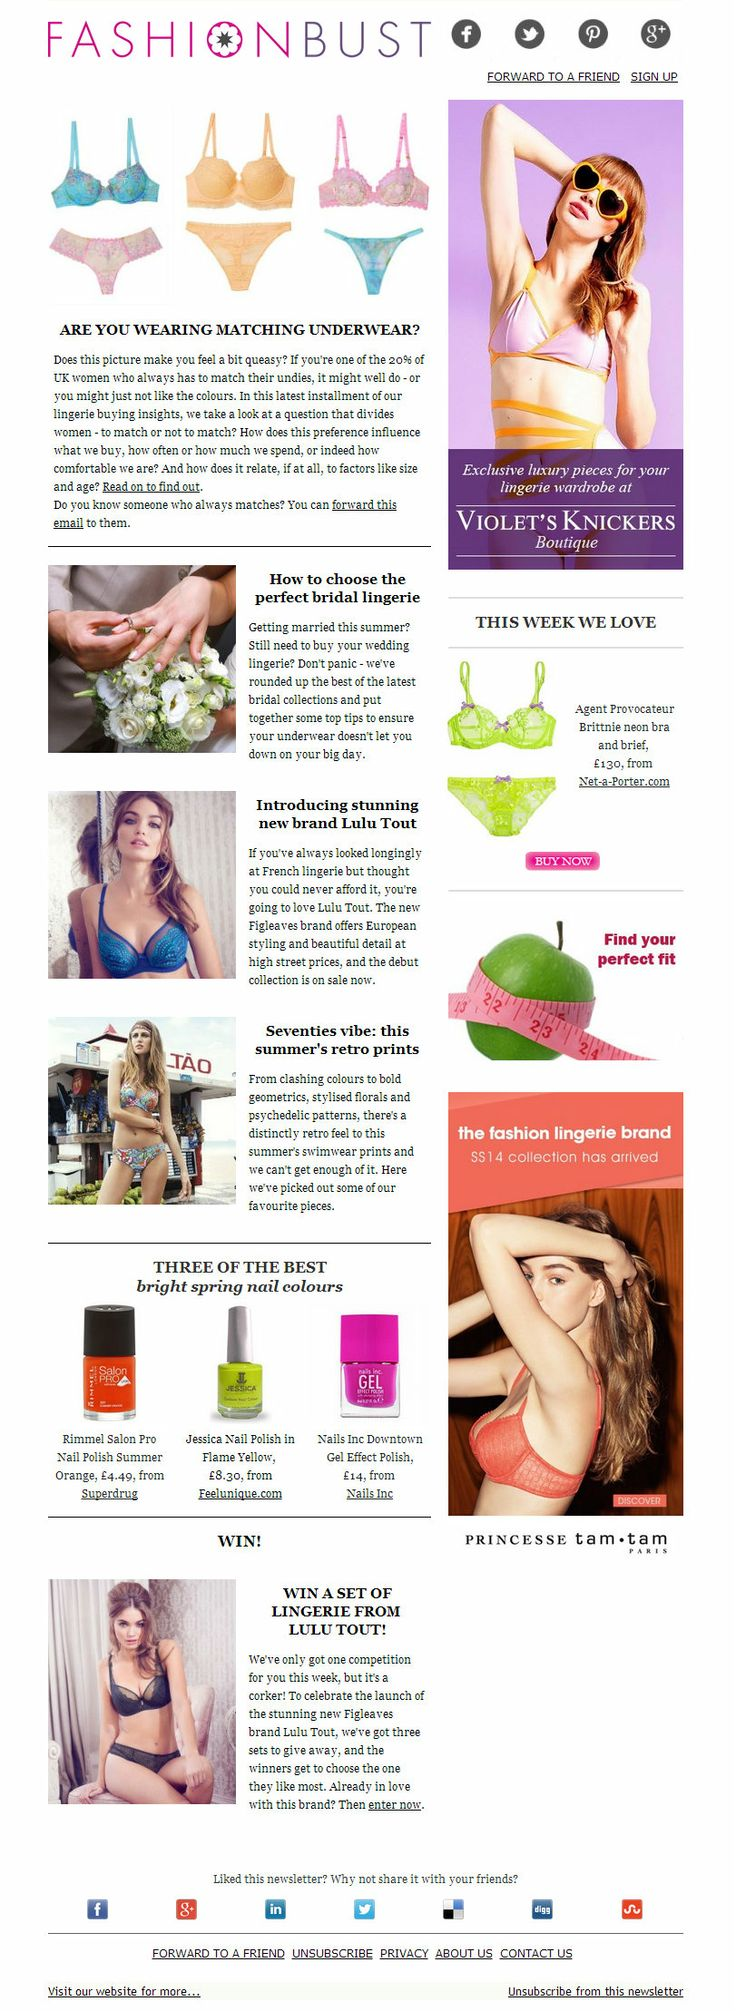 This week we take a look at an underwear question that divides women - to match or not to match? Plus, wedding season is just getting underway so we've got a round up of the latest bridal collections, some stunning retro print swimwear and the launch of new brand Lulu Tout - and your chance to win a set!